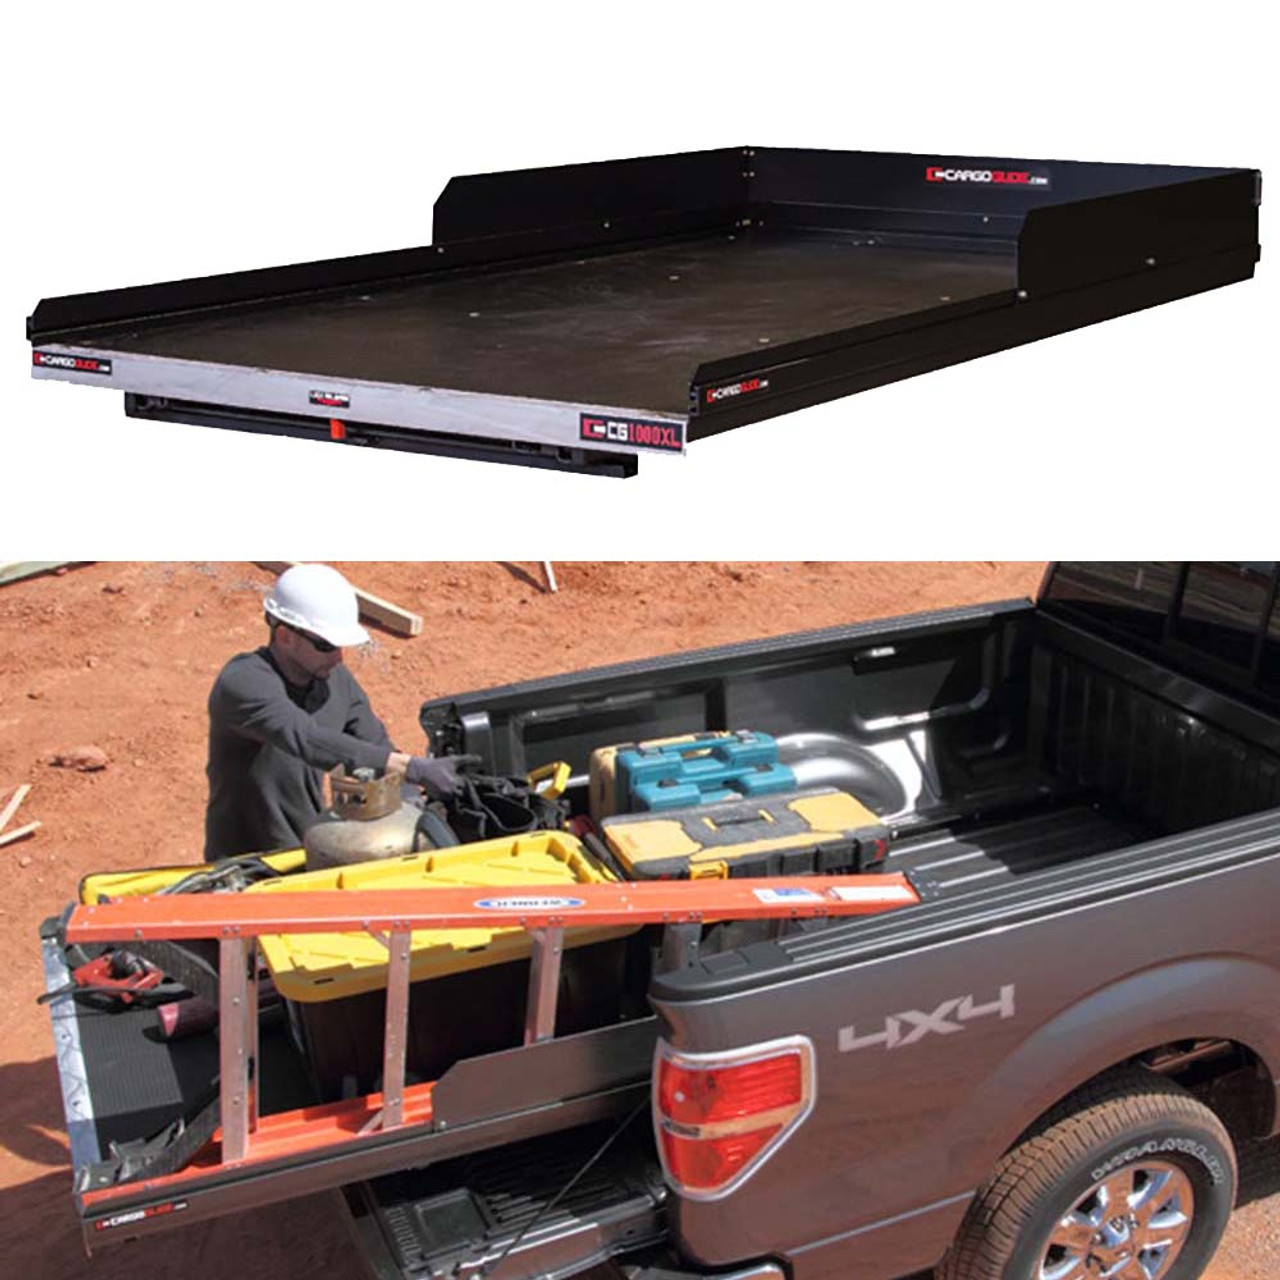 "Cargo-Glide CG1000XL Toyota Tundra Steel Truck-Bed Slide and Extender, 1000 lb Capacity, 100% Extension, 4"" Side Rails with 8"" High Sides, 4.5"" Deck Height, Includes Installation Kit"